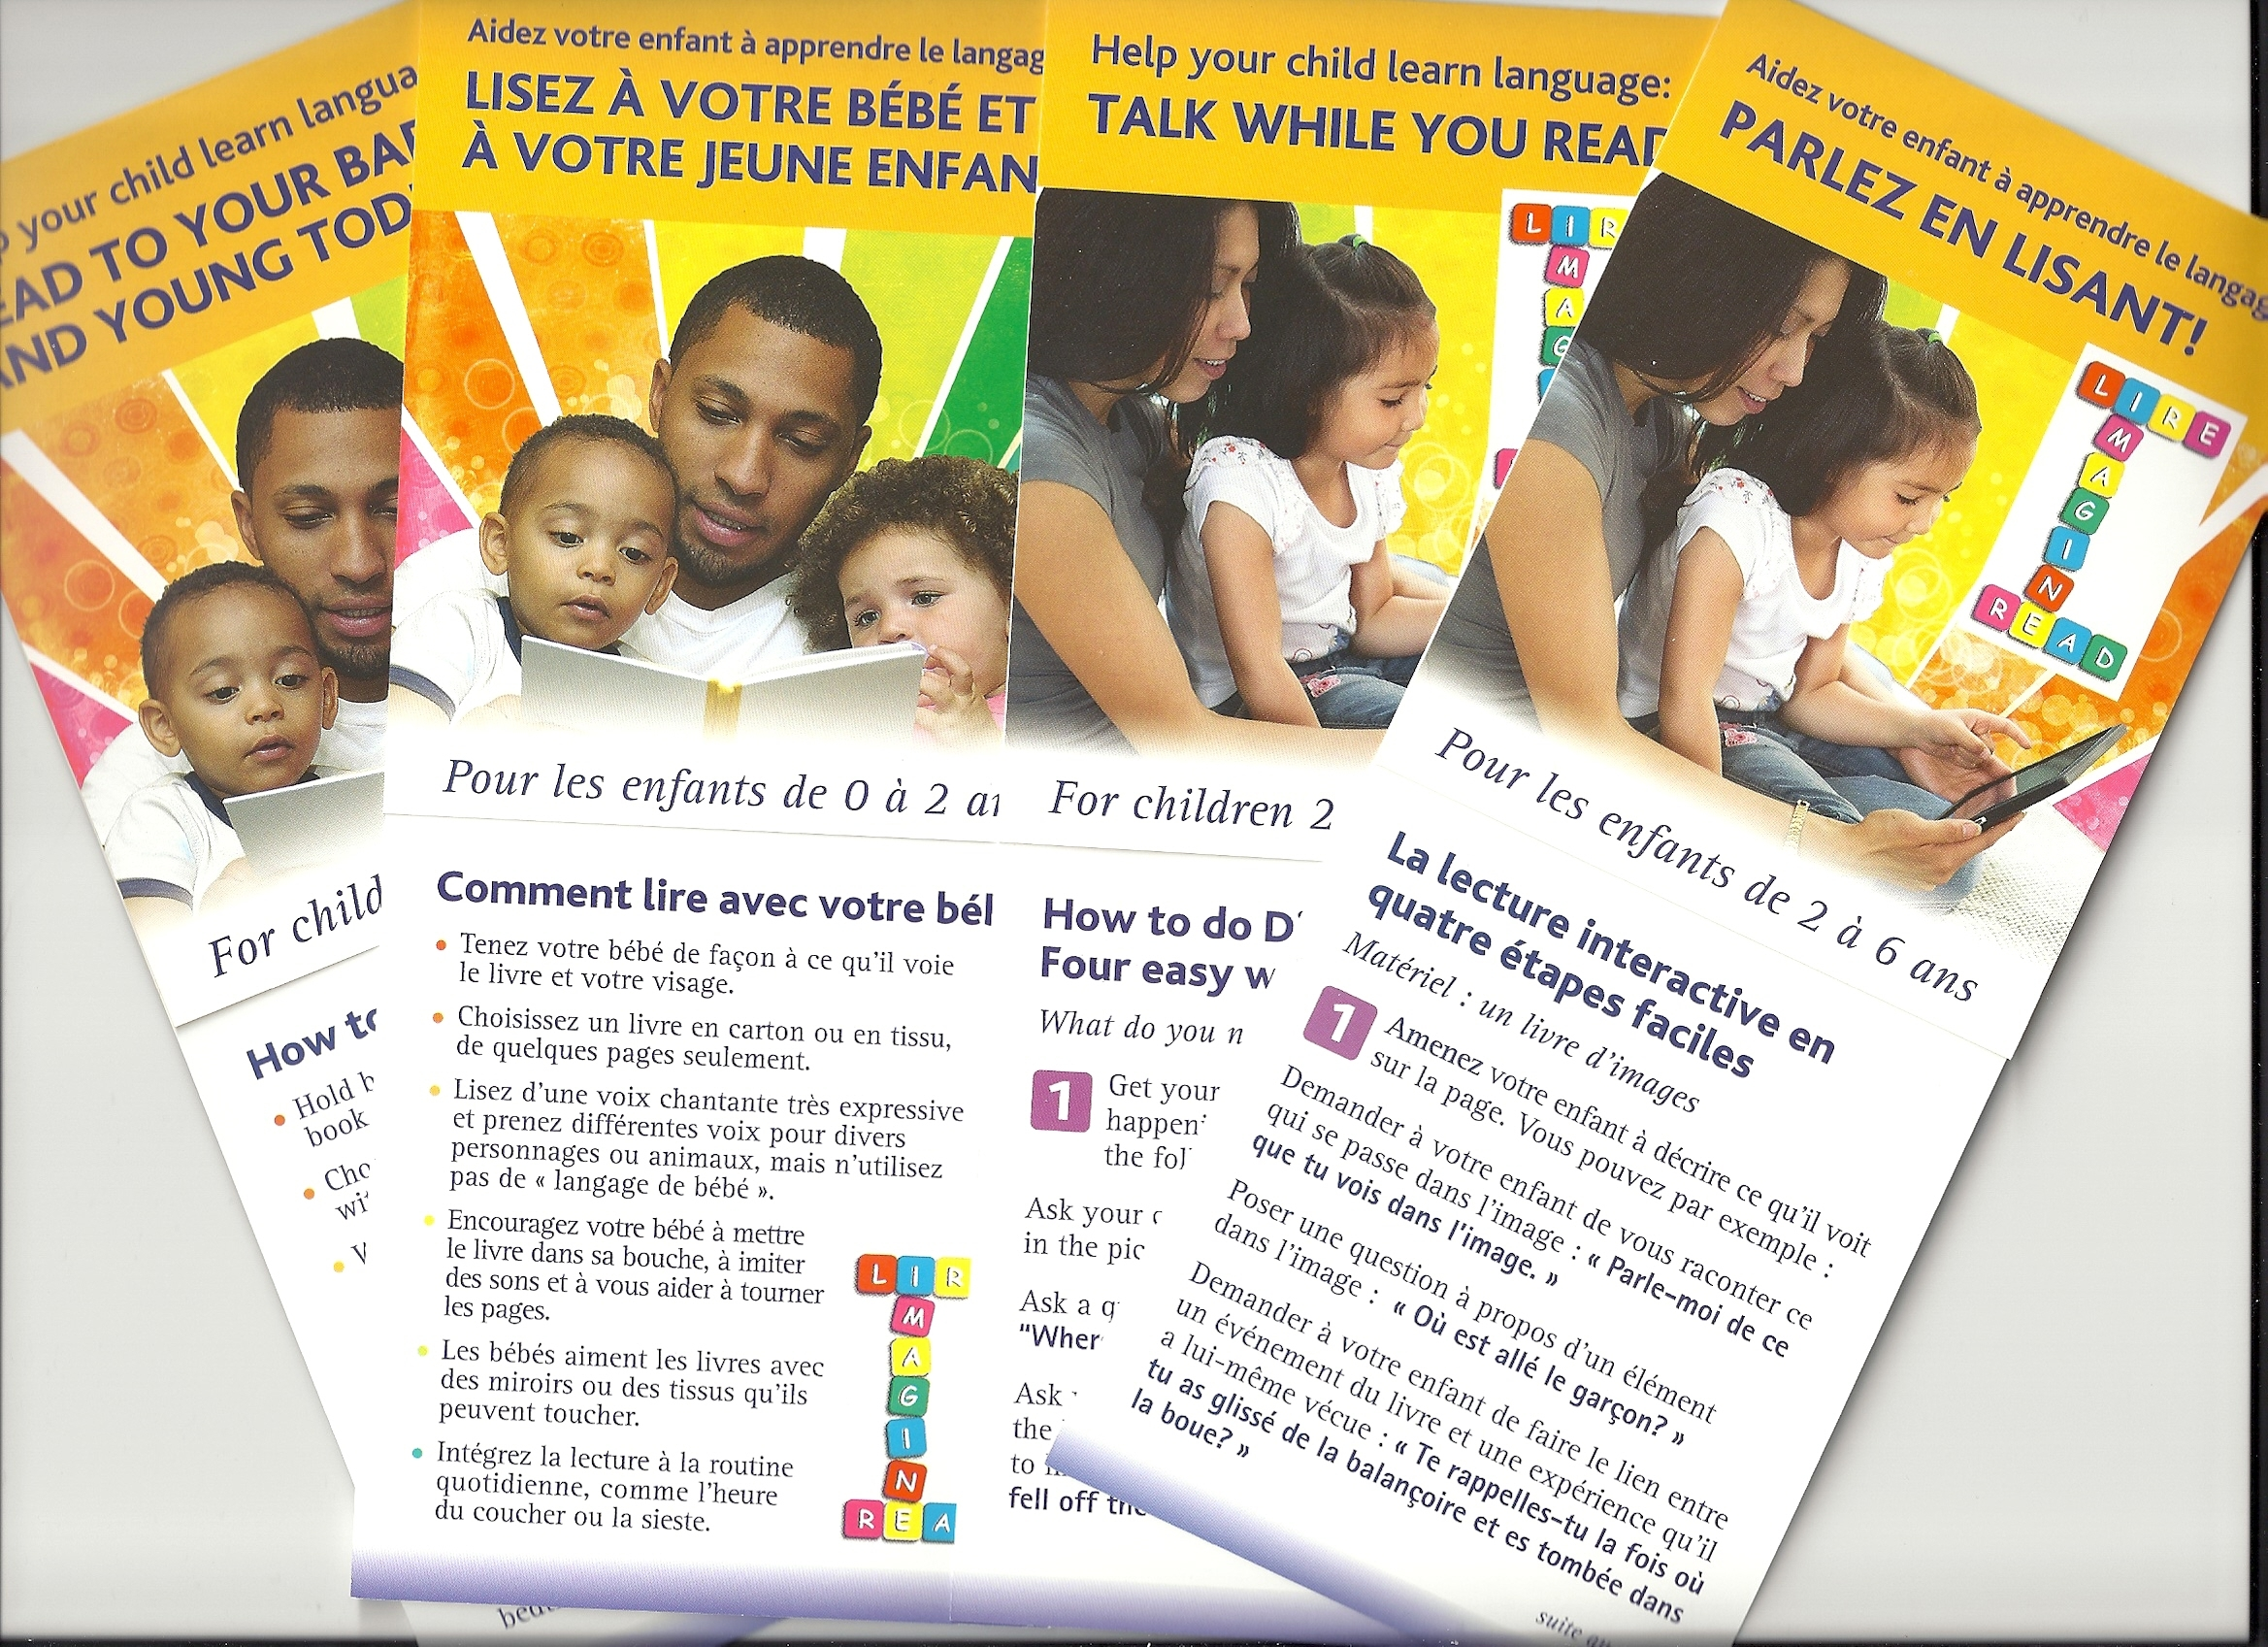 Brochures on reading and child development